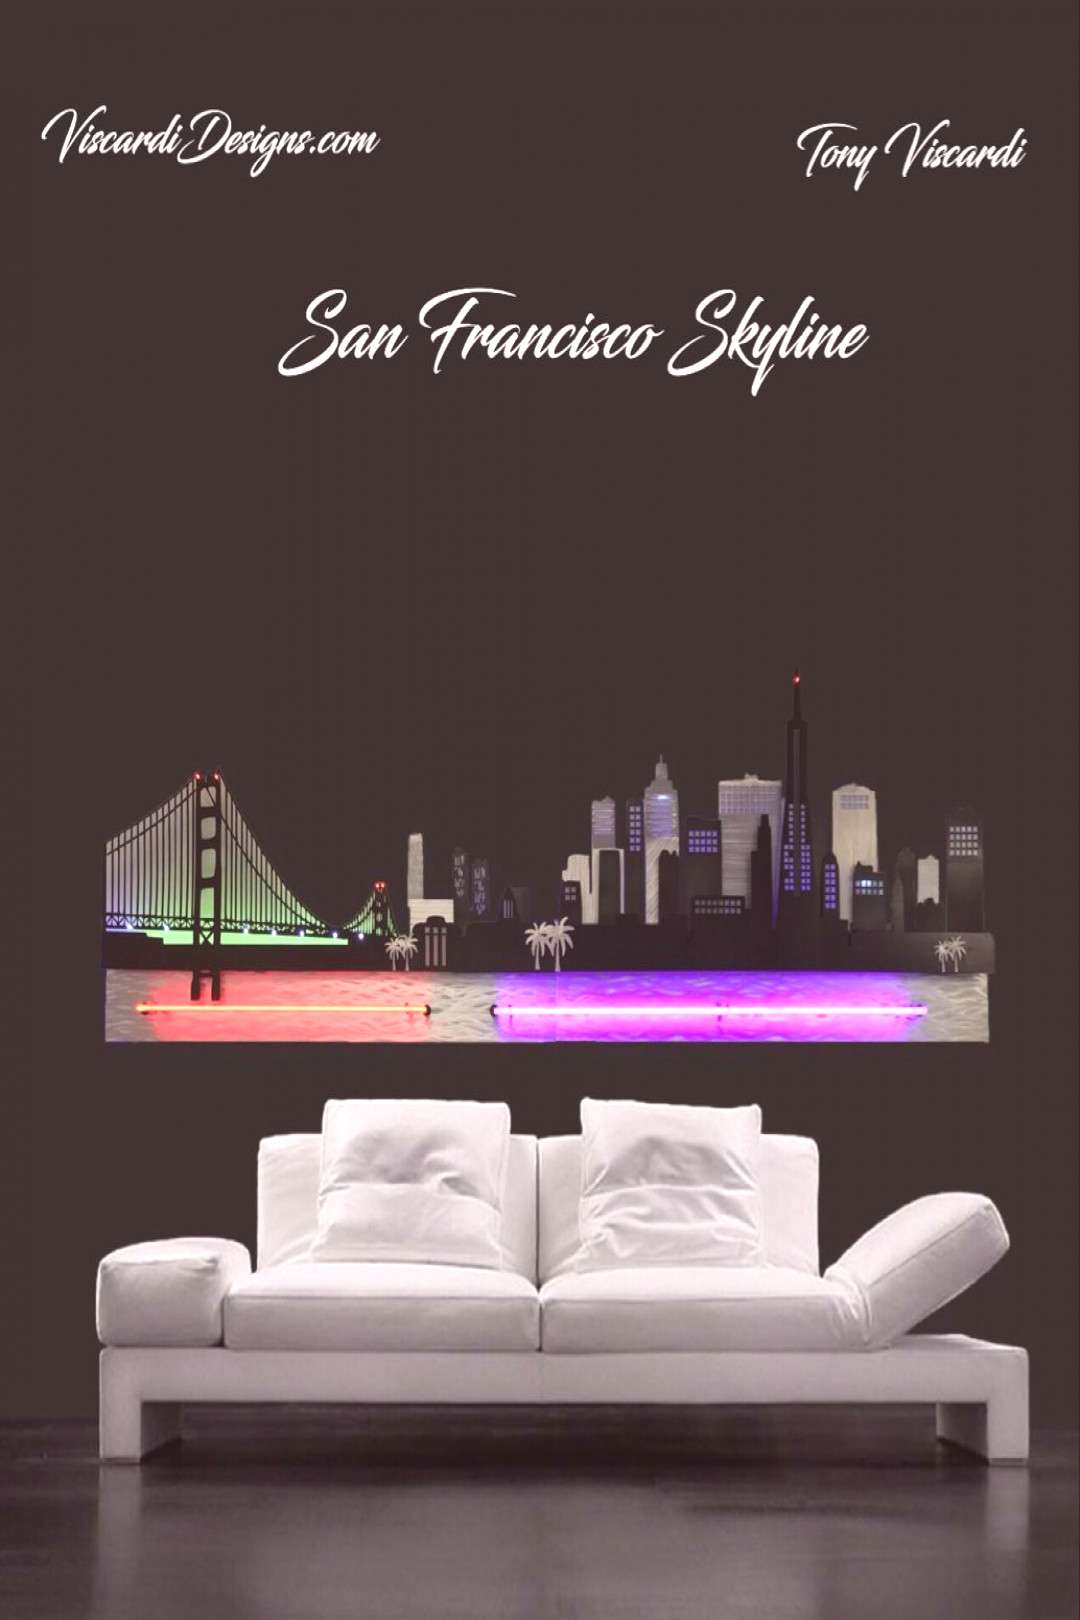 San Francisco Skyline sculpture by artist Tony Viscardi San Francisco Skyline incorporates Neon and